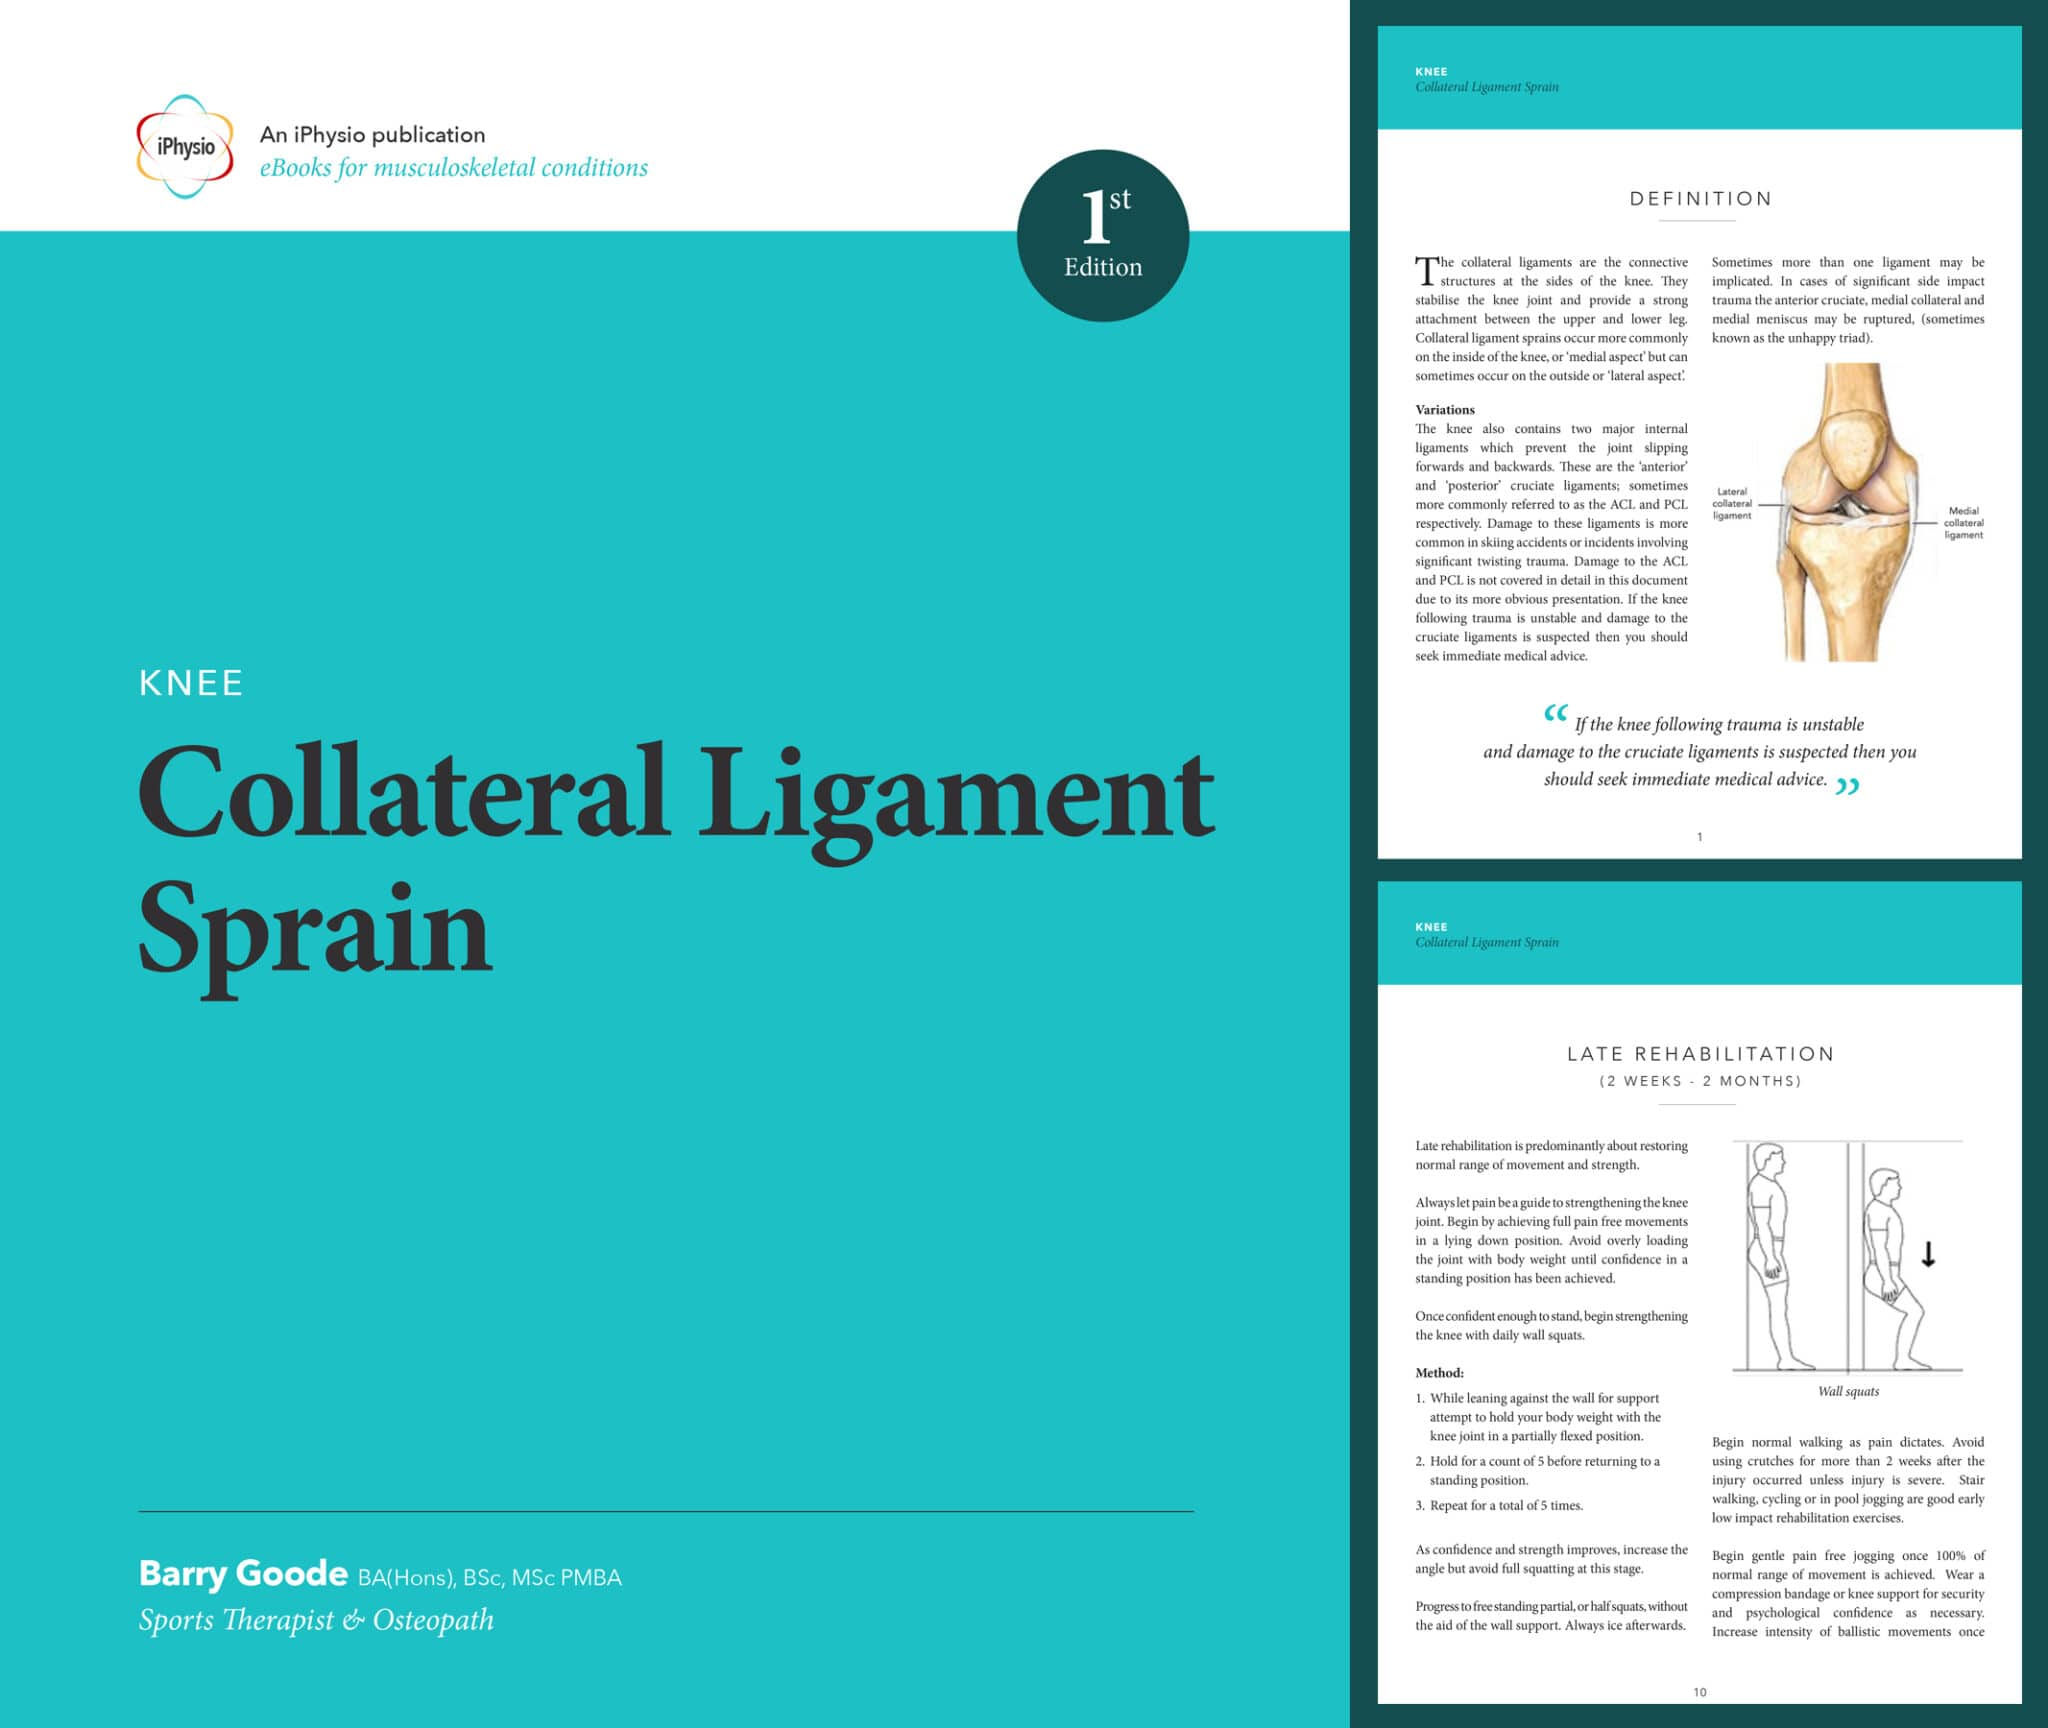 Knee Collateral Ligament Sprain treatment advice